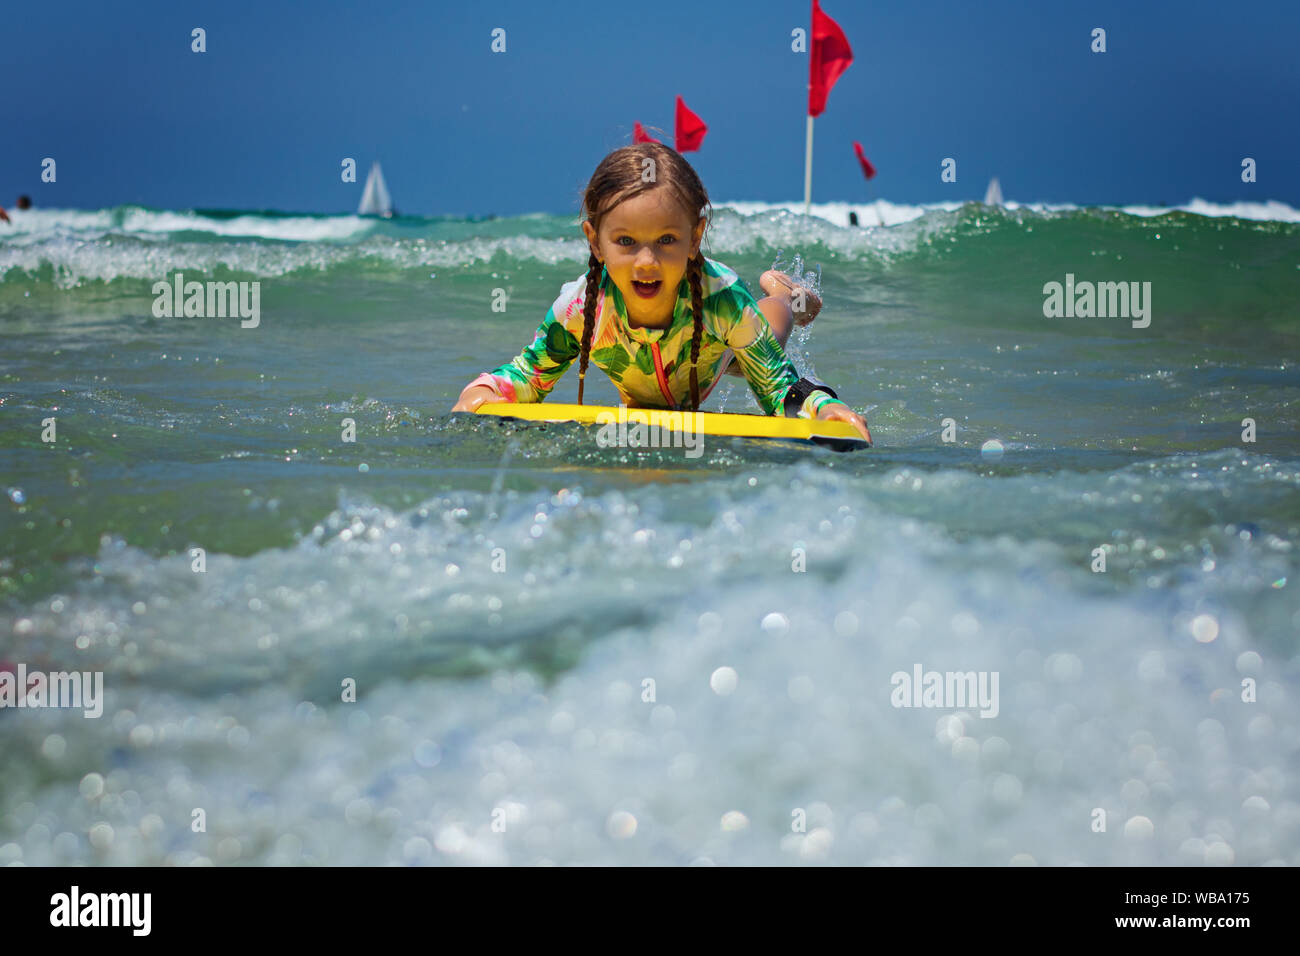 Happy baby girl - young surfer ride on surfboard with fun on sea waves. Active family lifestyle Stock Photo